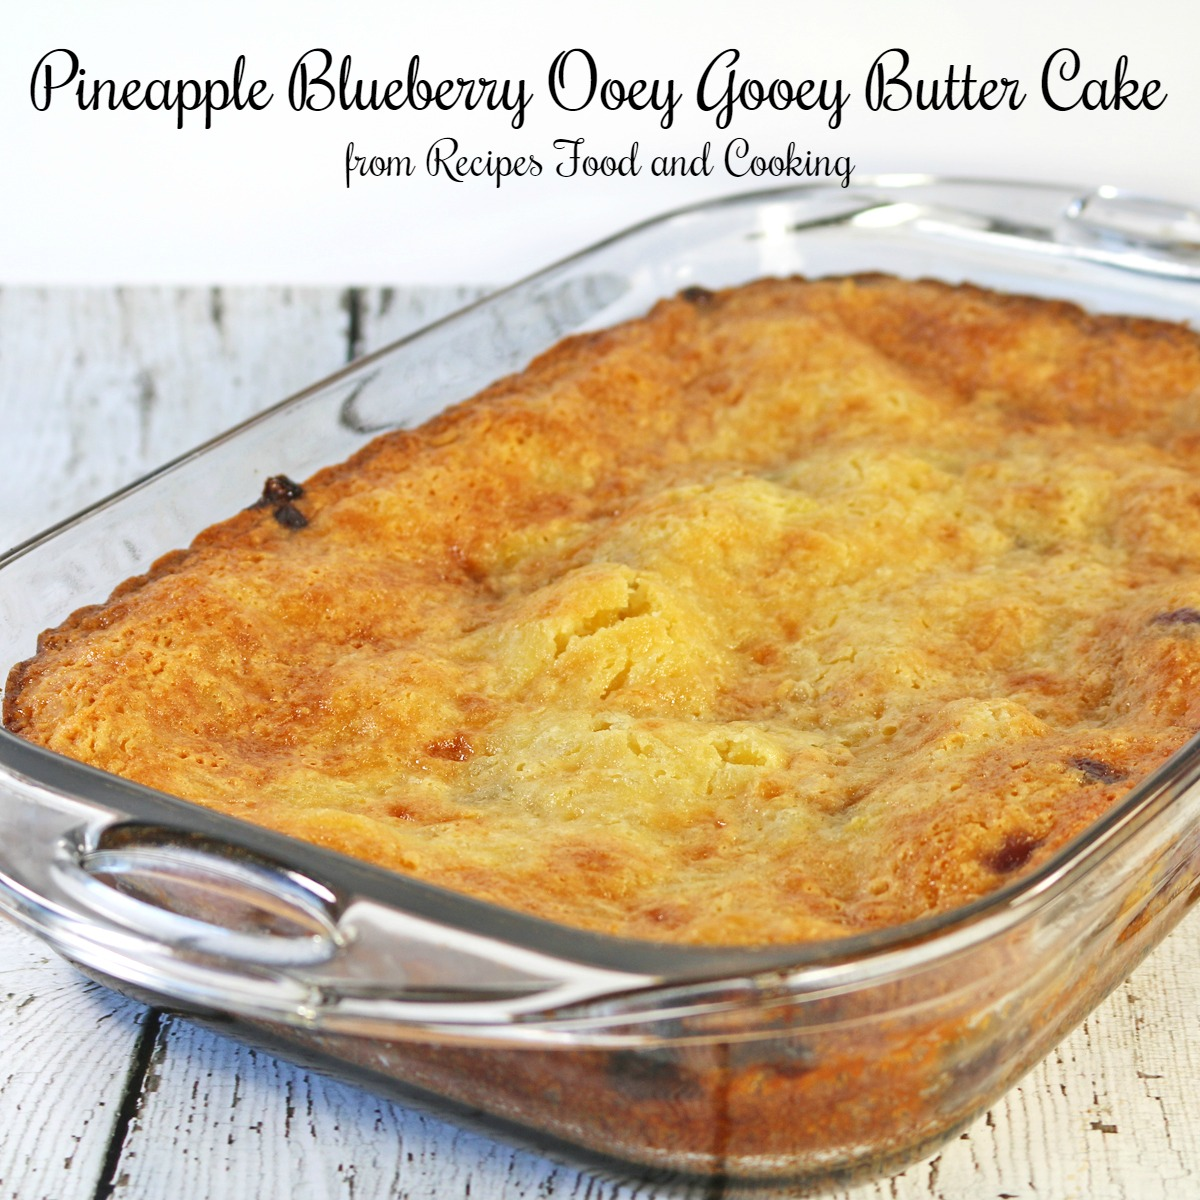 Pineapple Blueberry Ooey Gooey Butter Cake